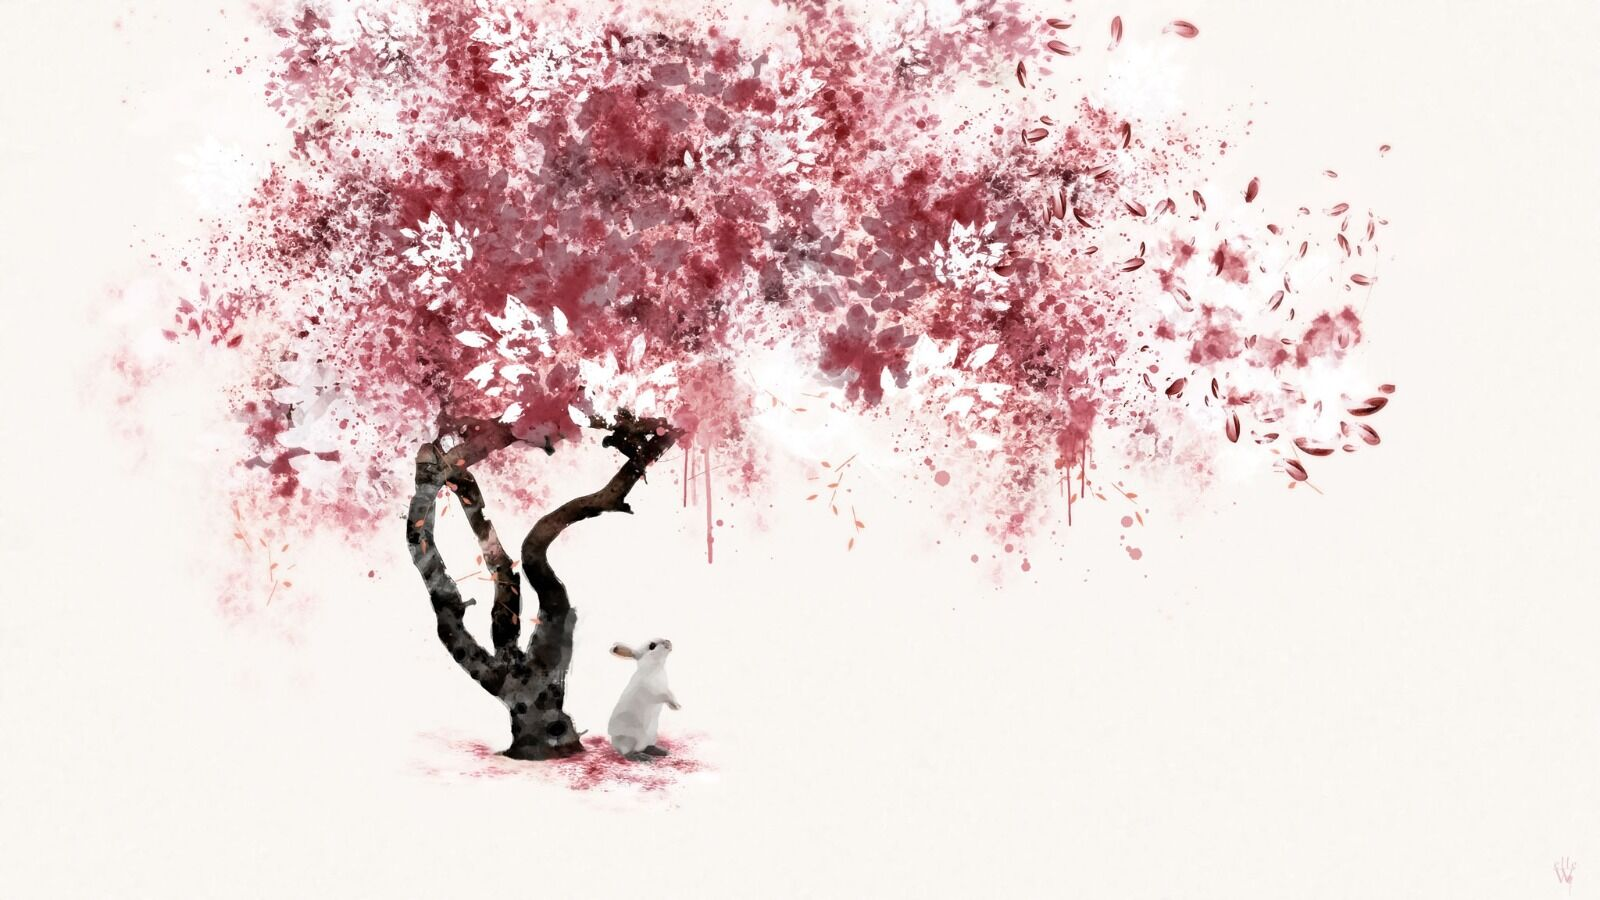 The little red tree - Mixed Art Effect